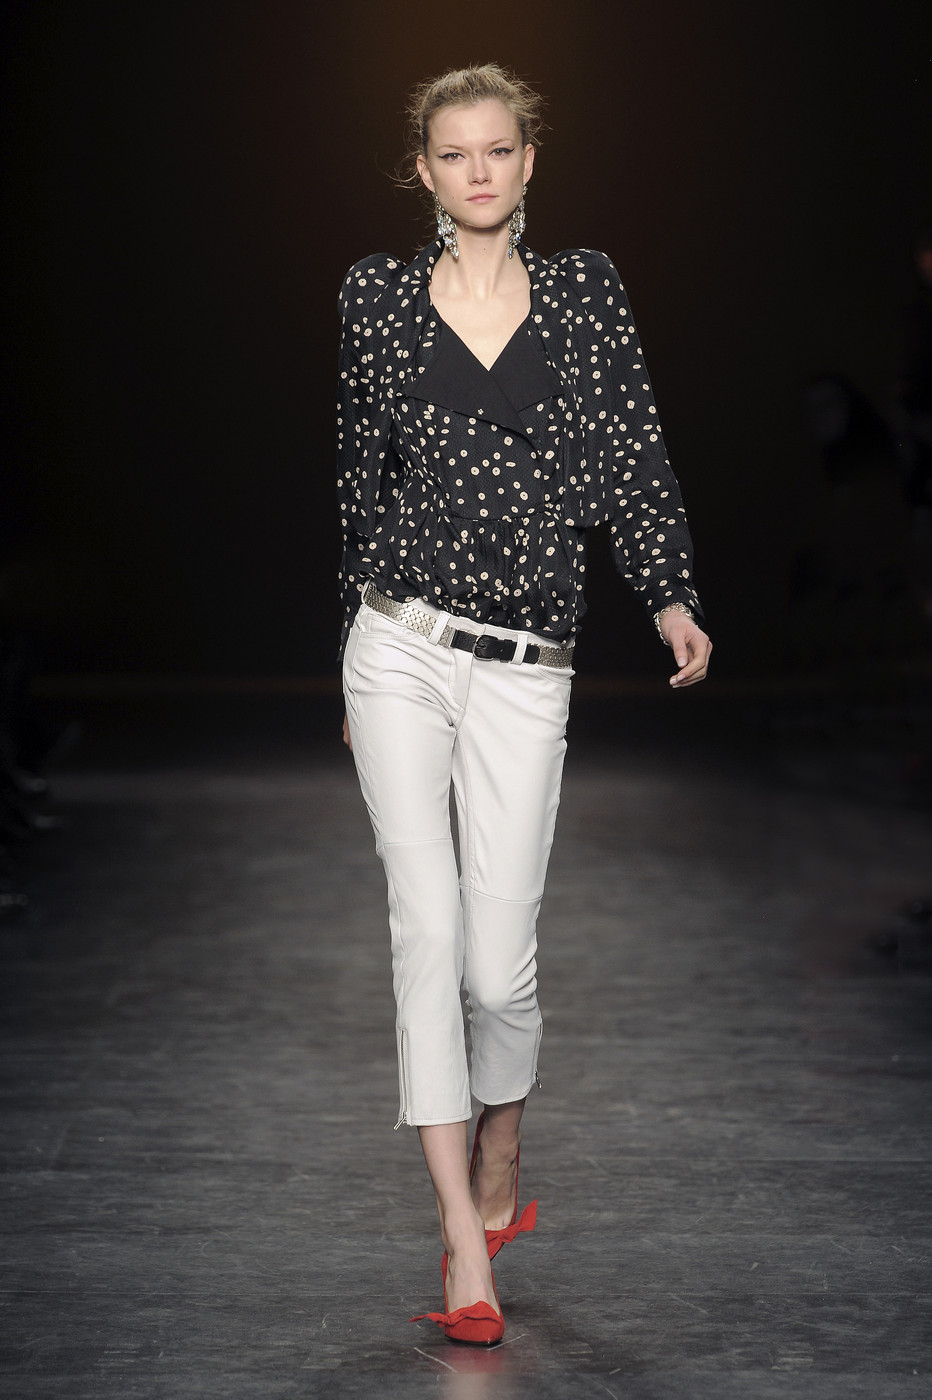 Isabel Marant Fall/Winter 2010 ready-to-wear collection